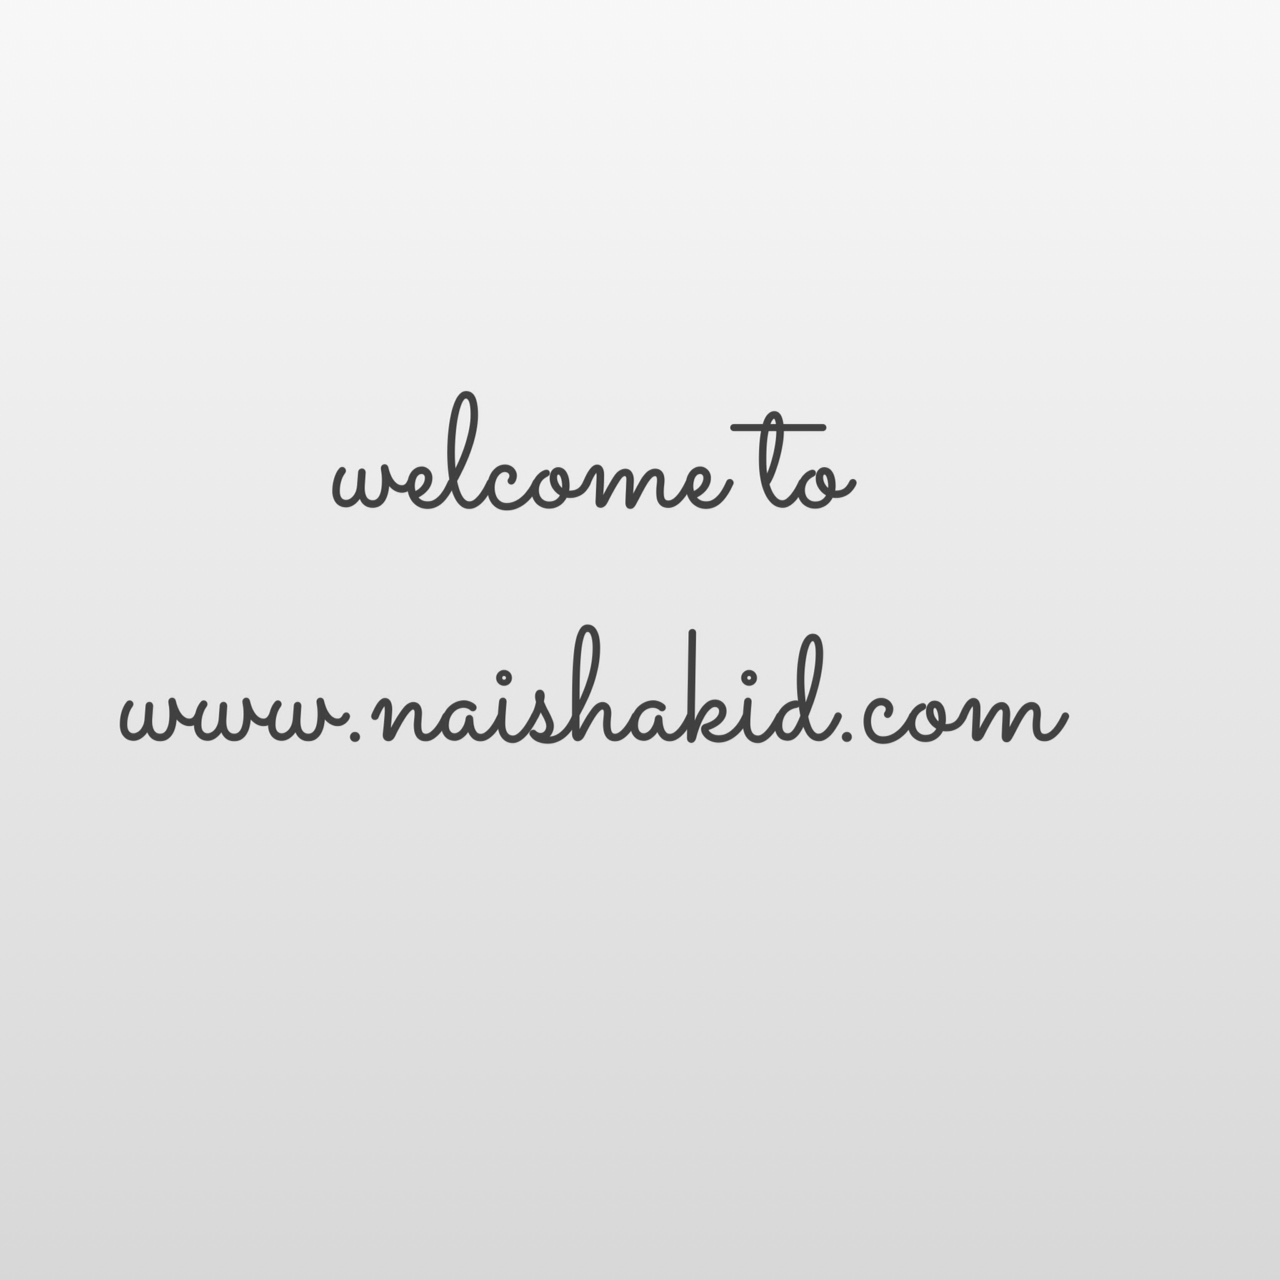 Welcome to naishakid.com